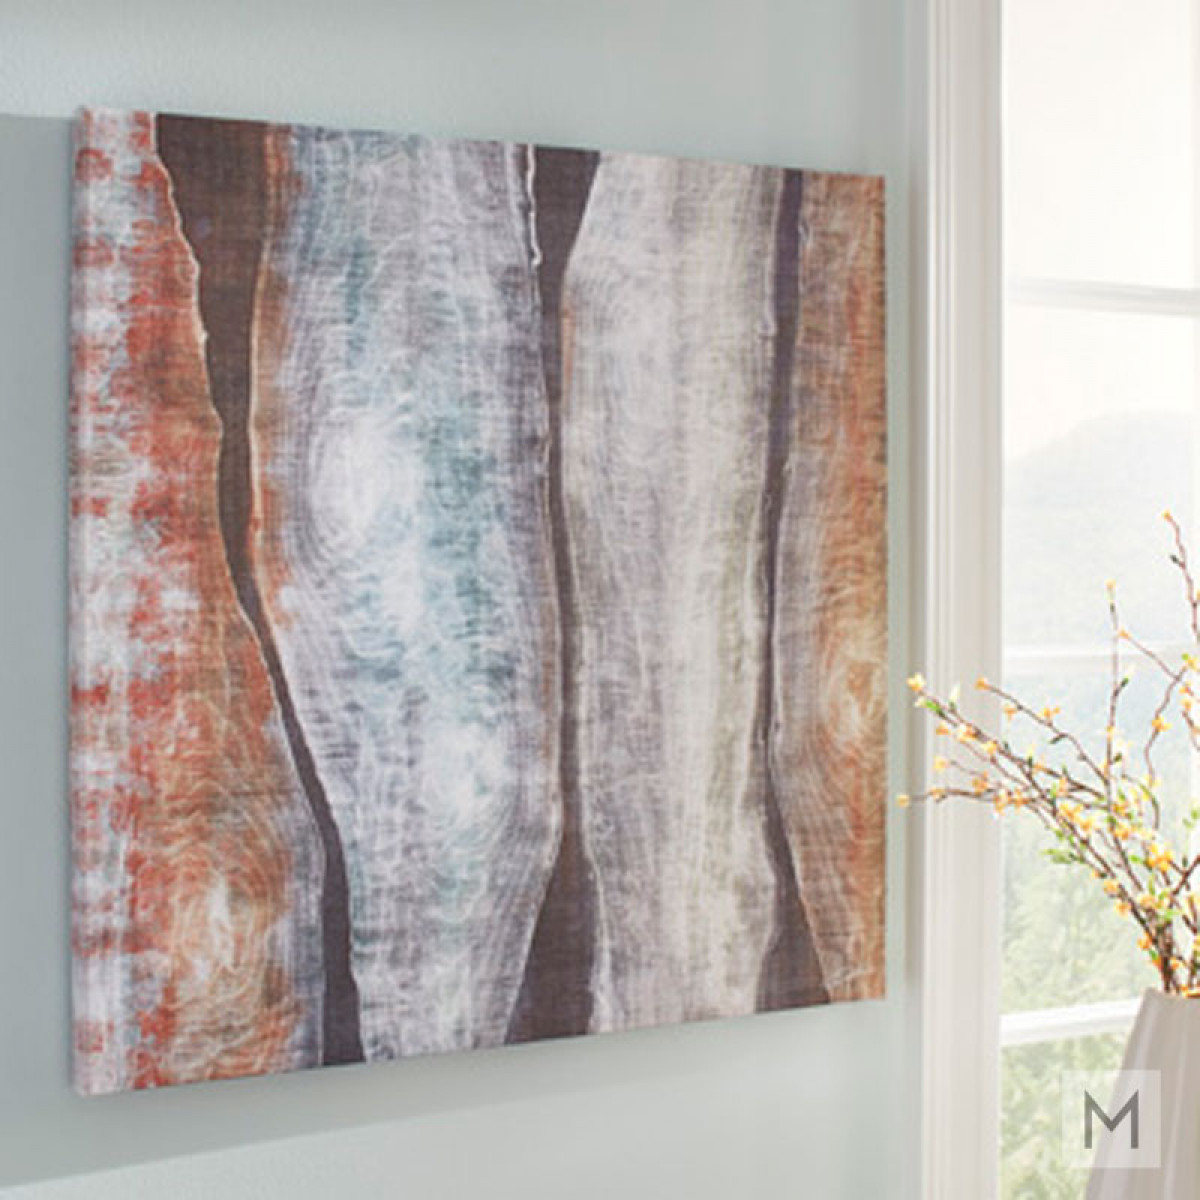 Abstract Woodgrain Wall Art on Canvas